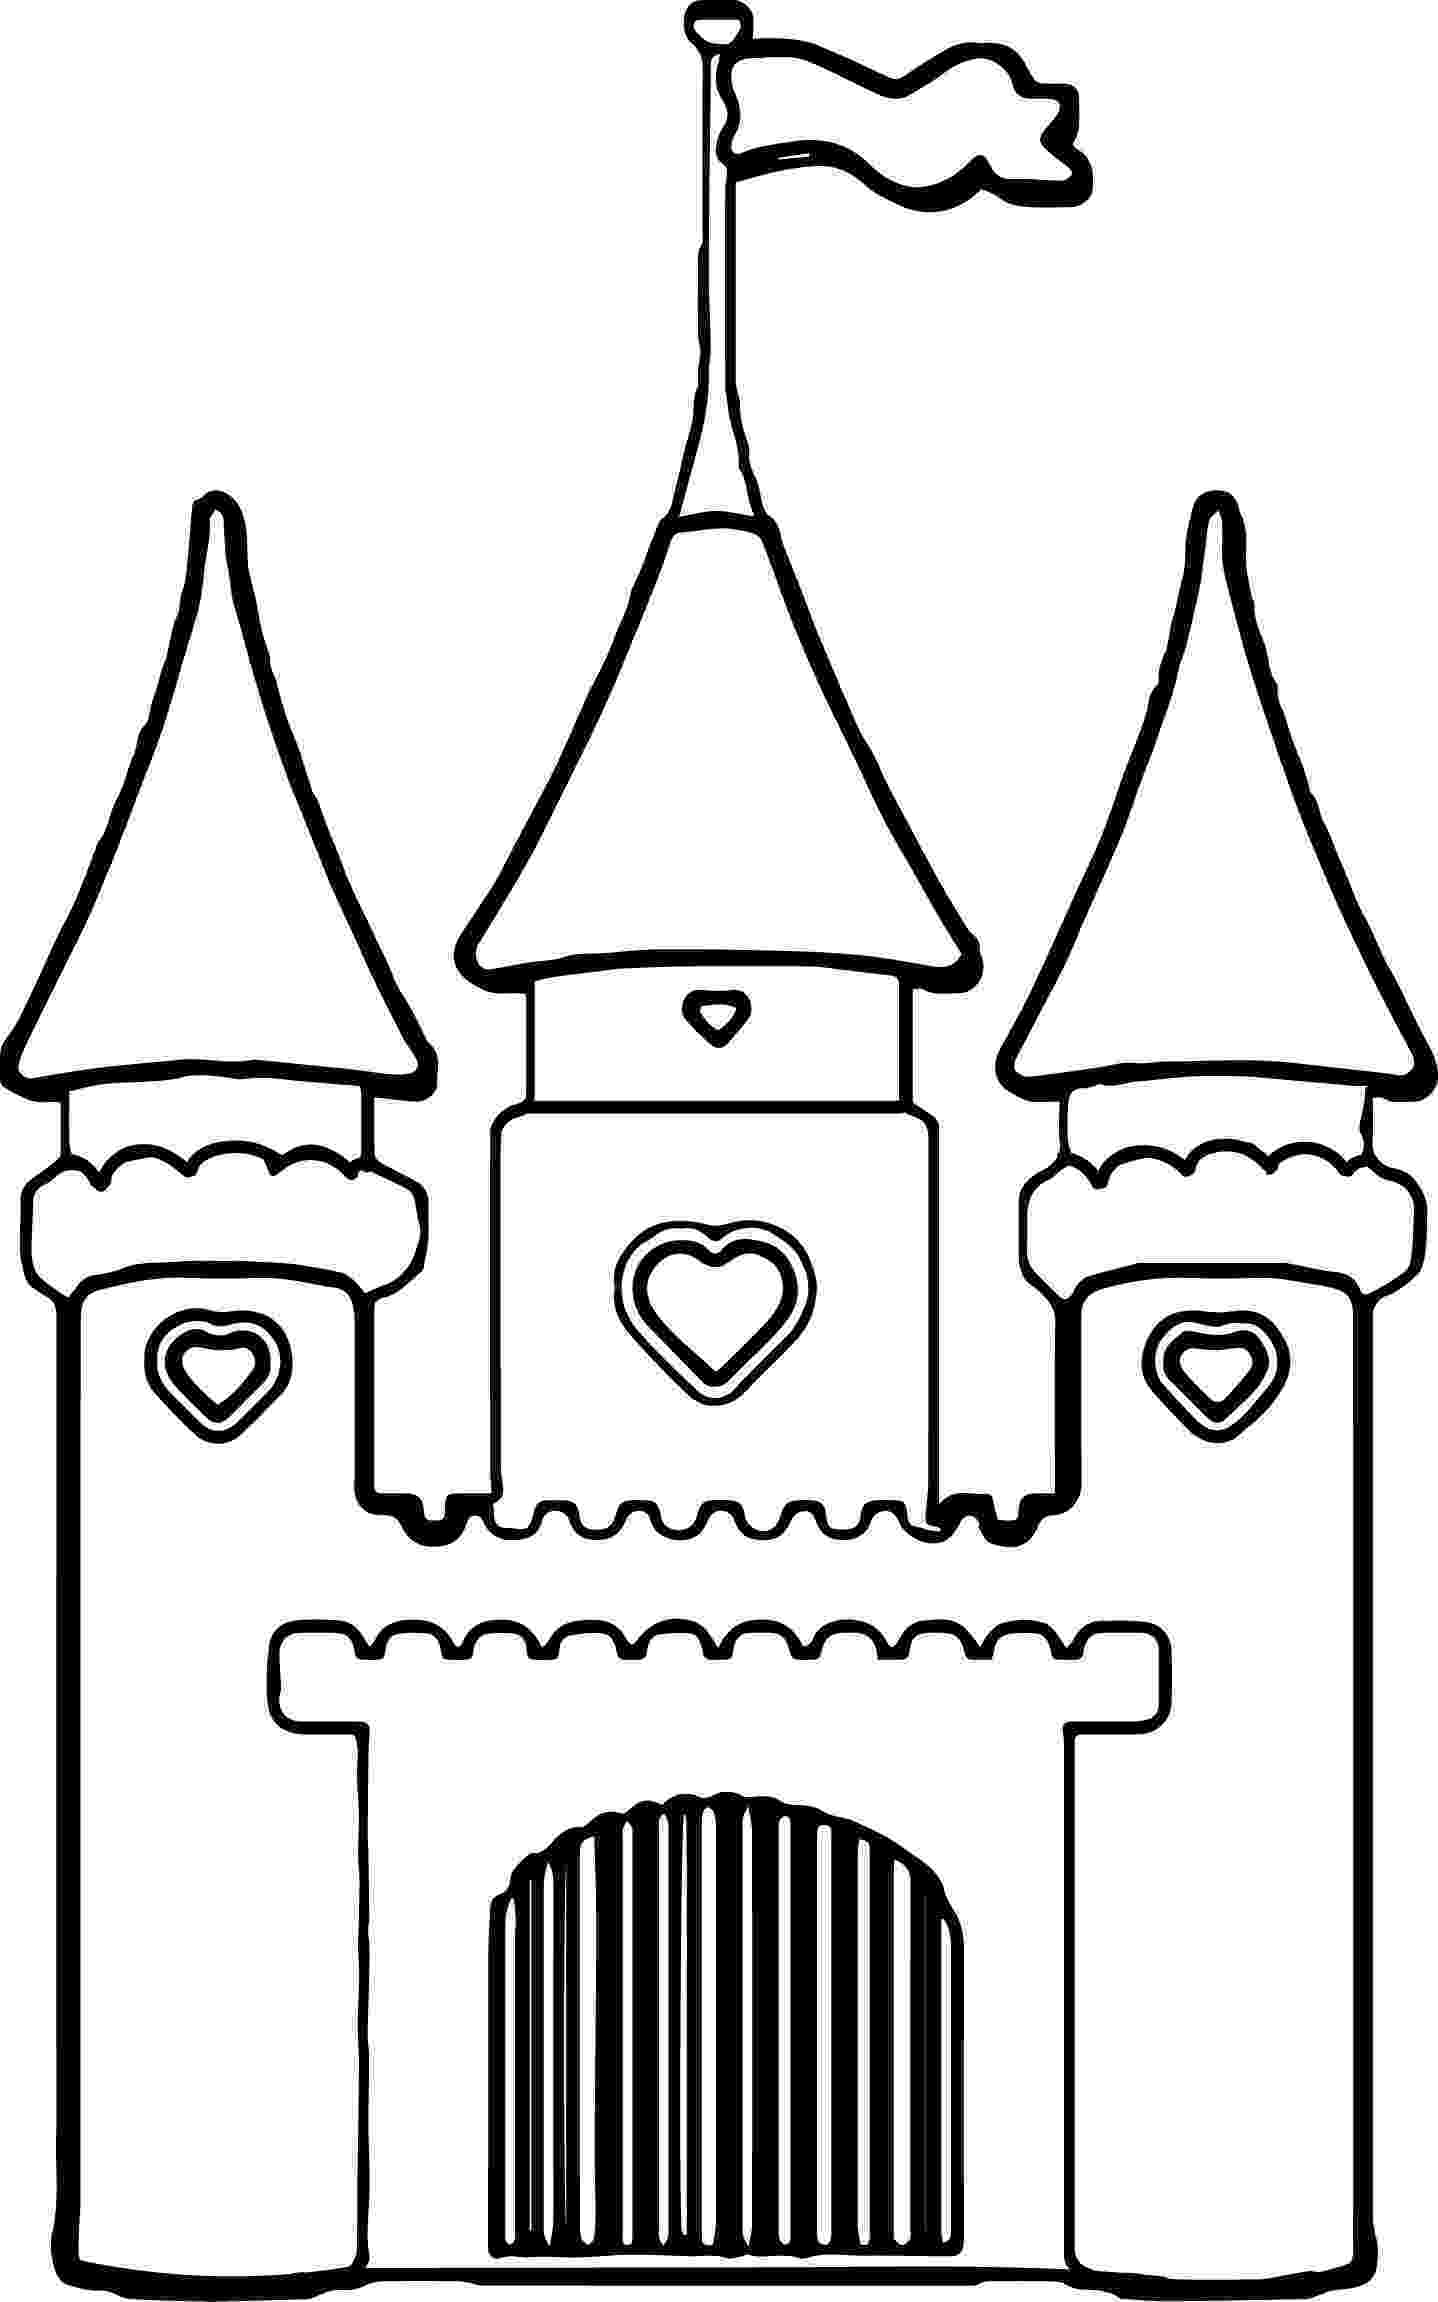 princess castle printable disney princess castle coloring pages sketch coloring page printable princess castle